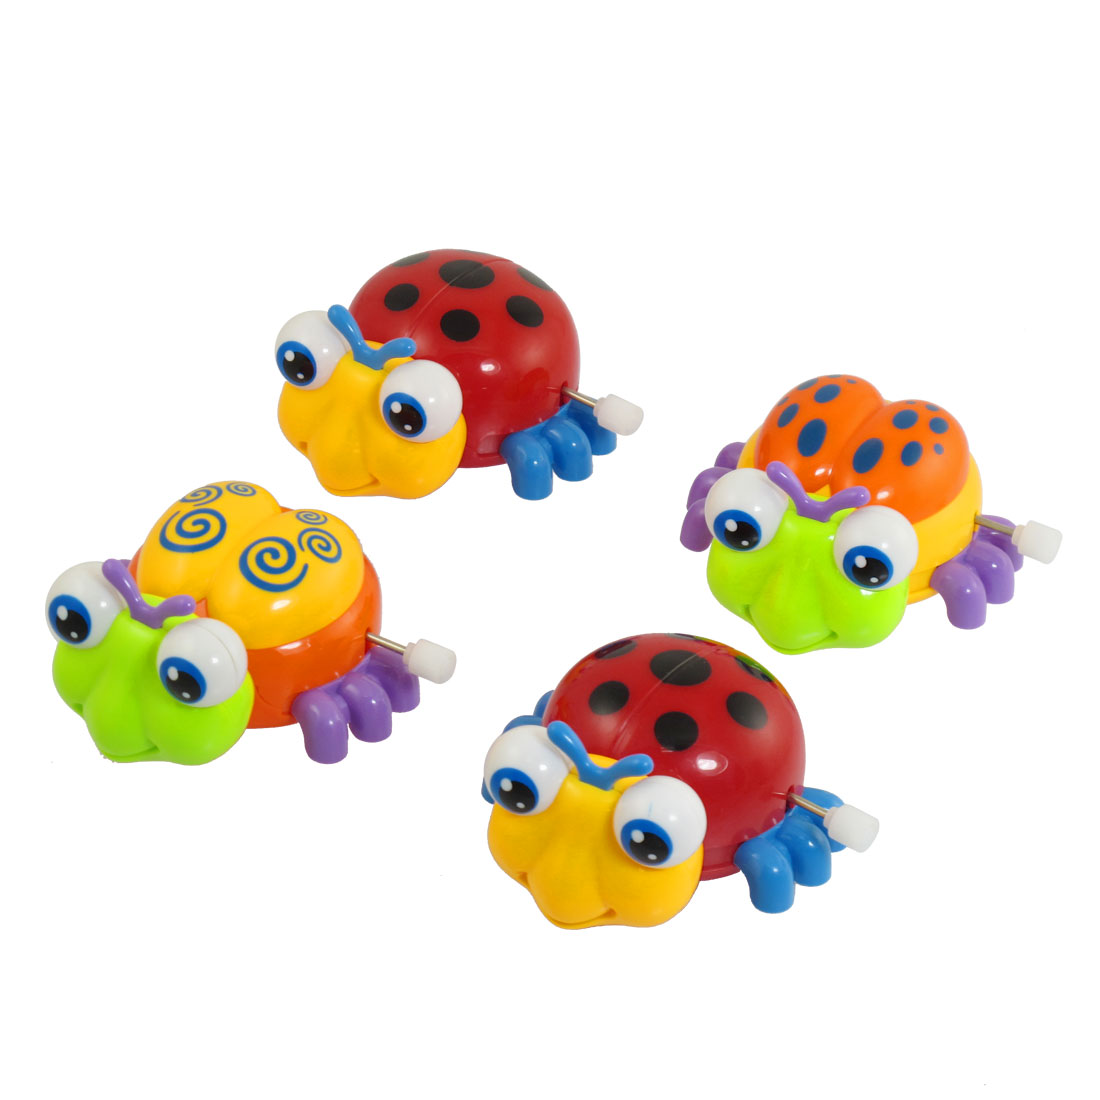 4 Pcs Children Plastic Headshake Beetle Wind Up Clockwork Toy